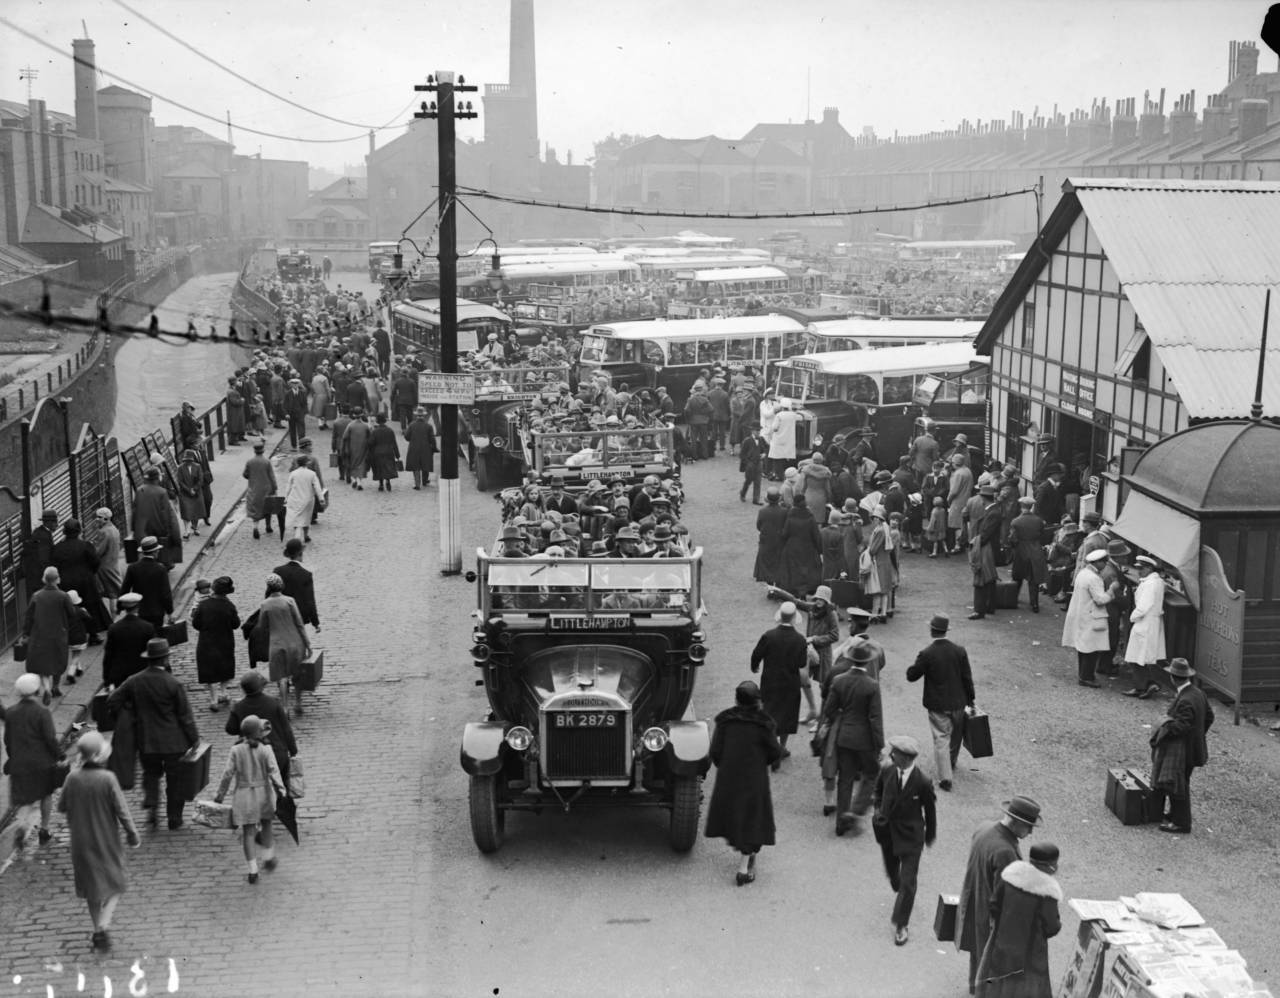 3rd August 1929: Passengers aboard open top buses at Victoria Motor Coach Station. (Photo by Fox Photos/Getty Images)